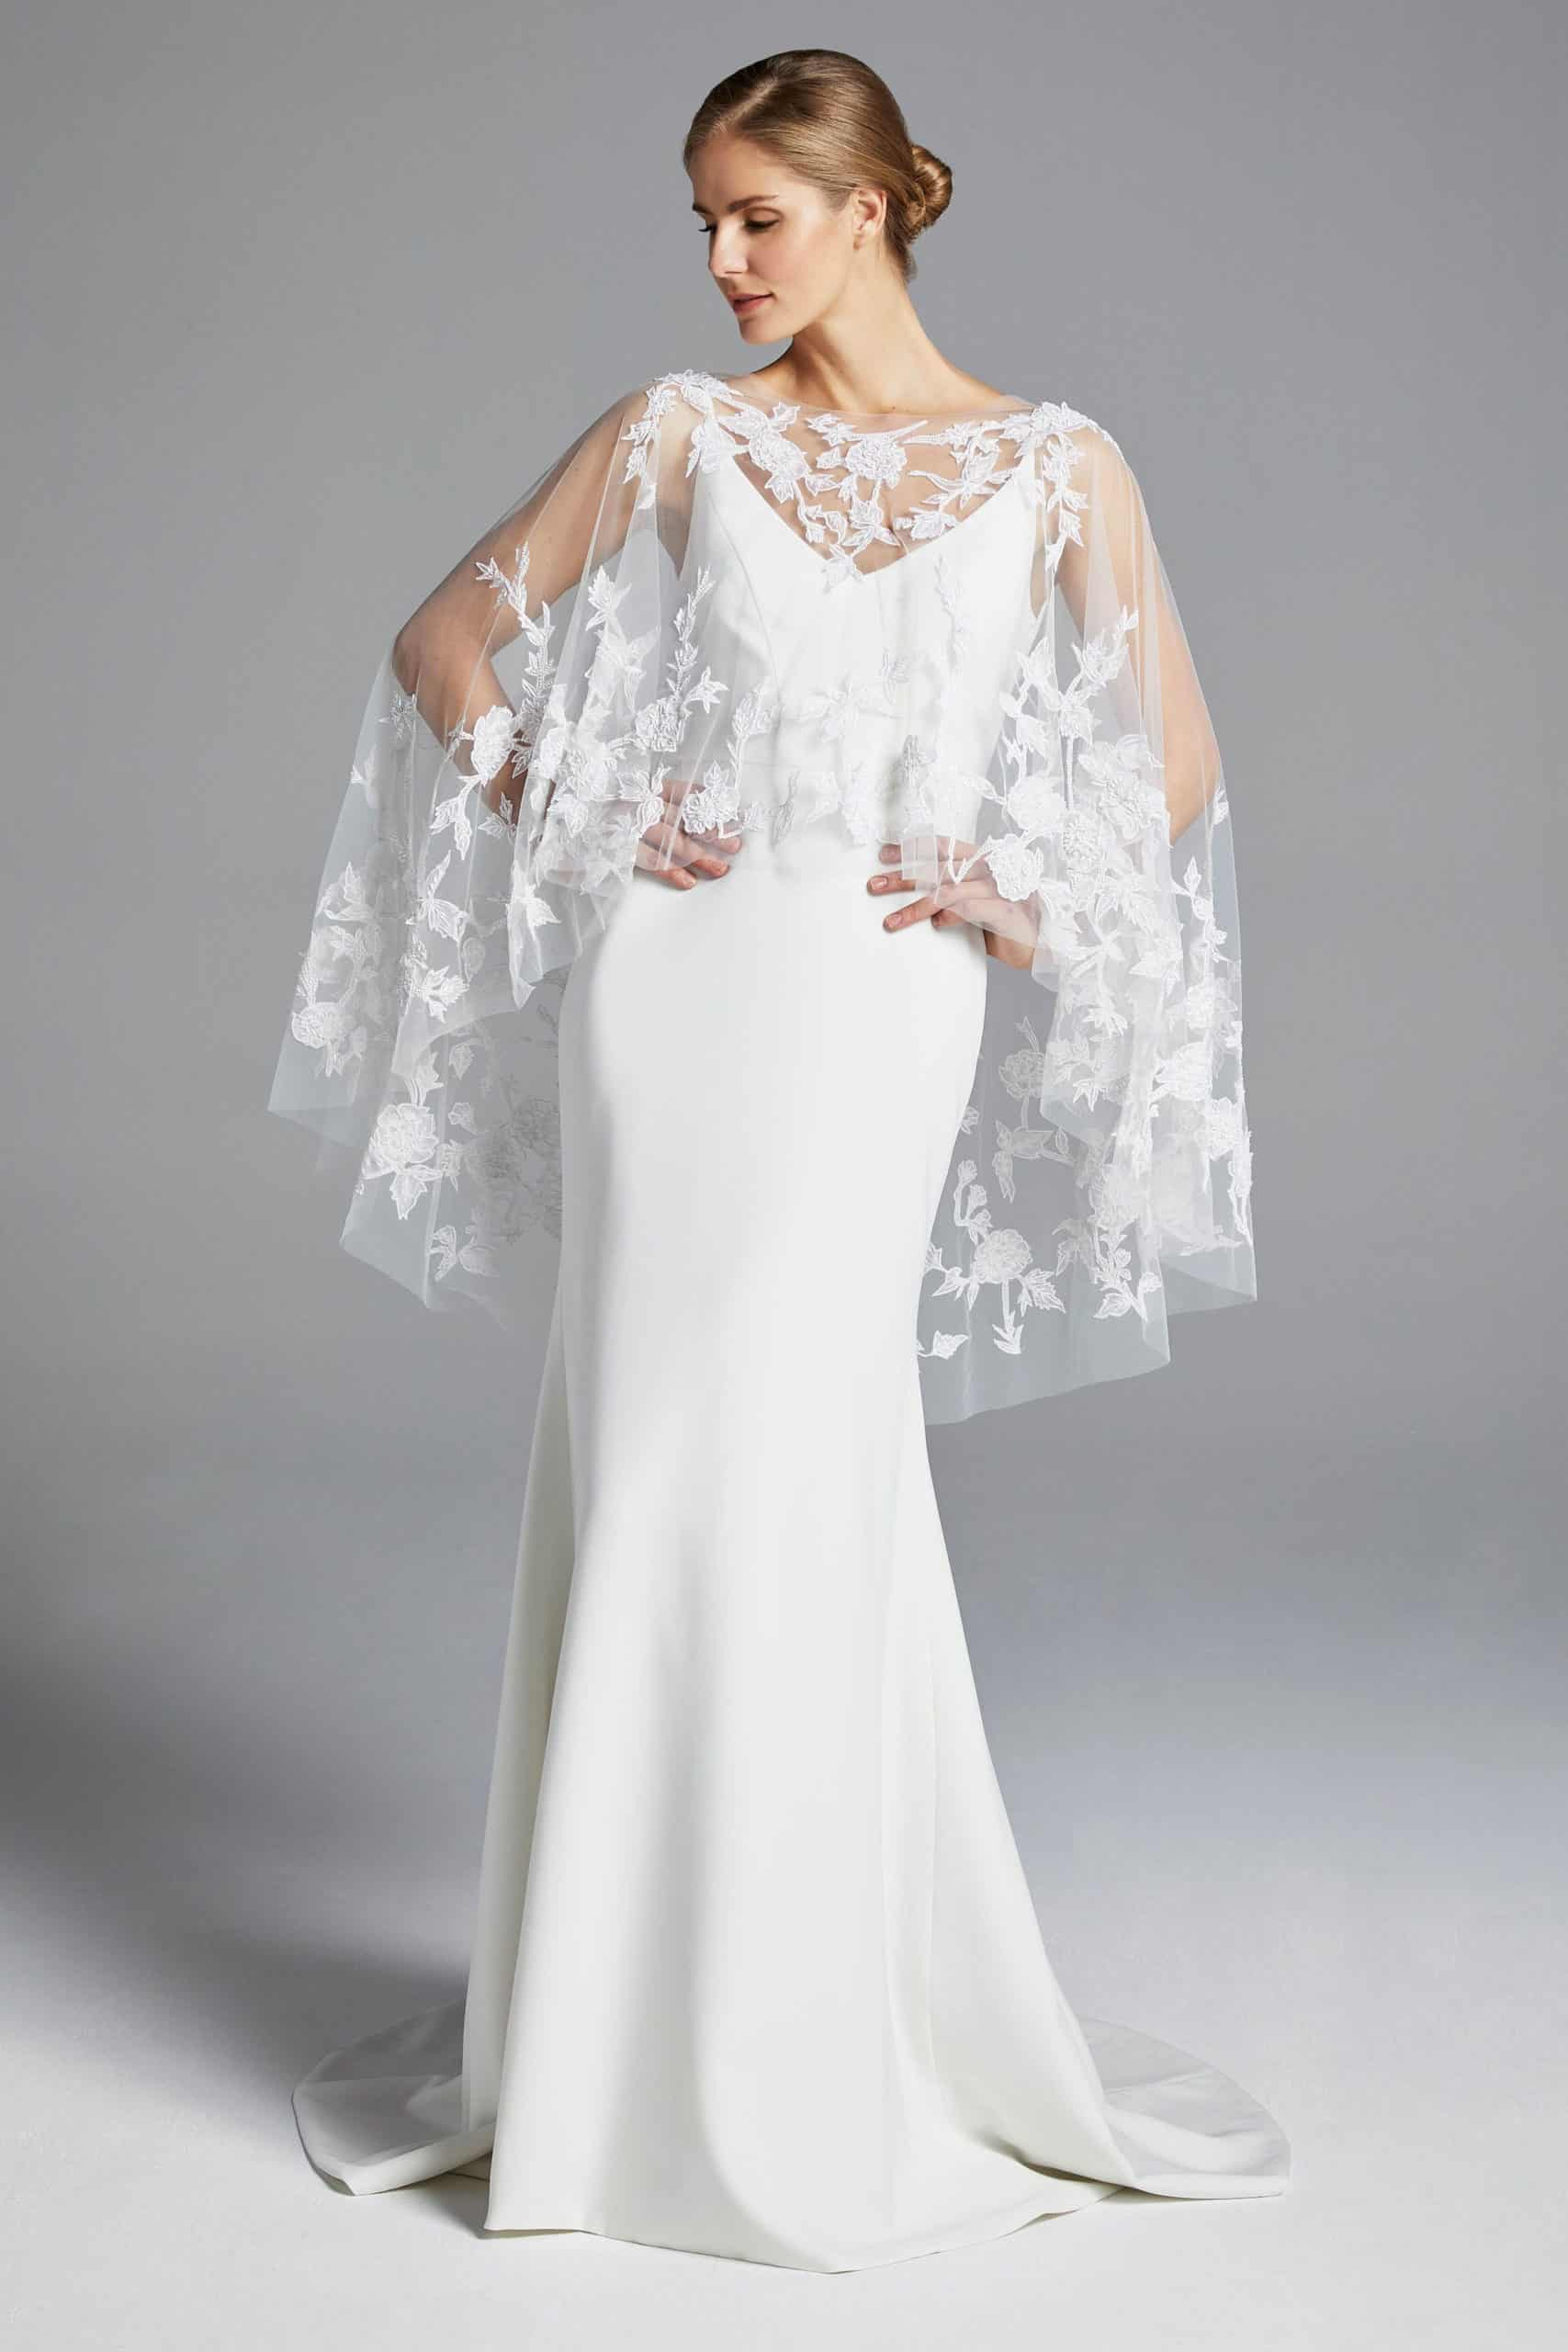 wedding dress with a see-through cape by Anne Barge